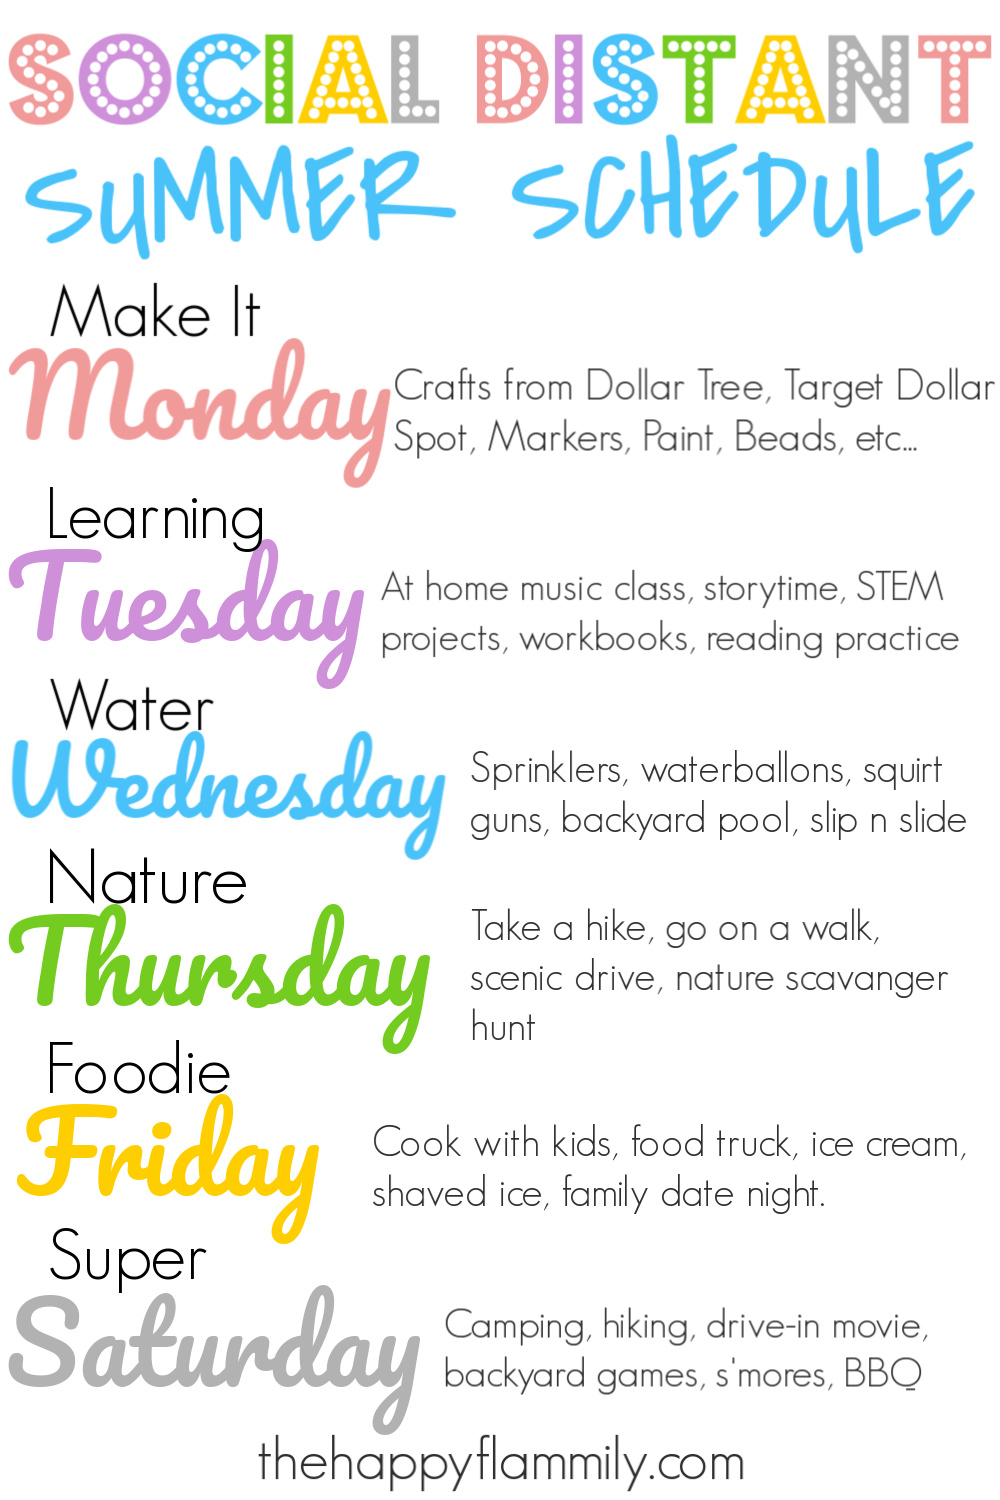 Social distant summer schedule. Summer schedule during quarantine. Things to do in the summer during social distancing. Social distancing activities for kids. Preschool summer schedule. Daily schedule for kids. Child routine schedule. Summer routine for stay at home mom. How to have a relaxing summer with kids. #summer #summerschedule #kids #homeschool #quarantine #socialdistancing #summertime #pandemic #family